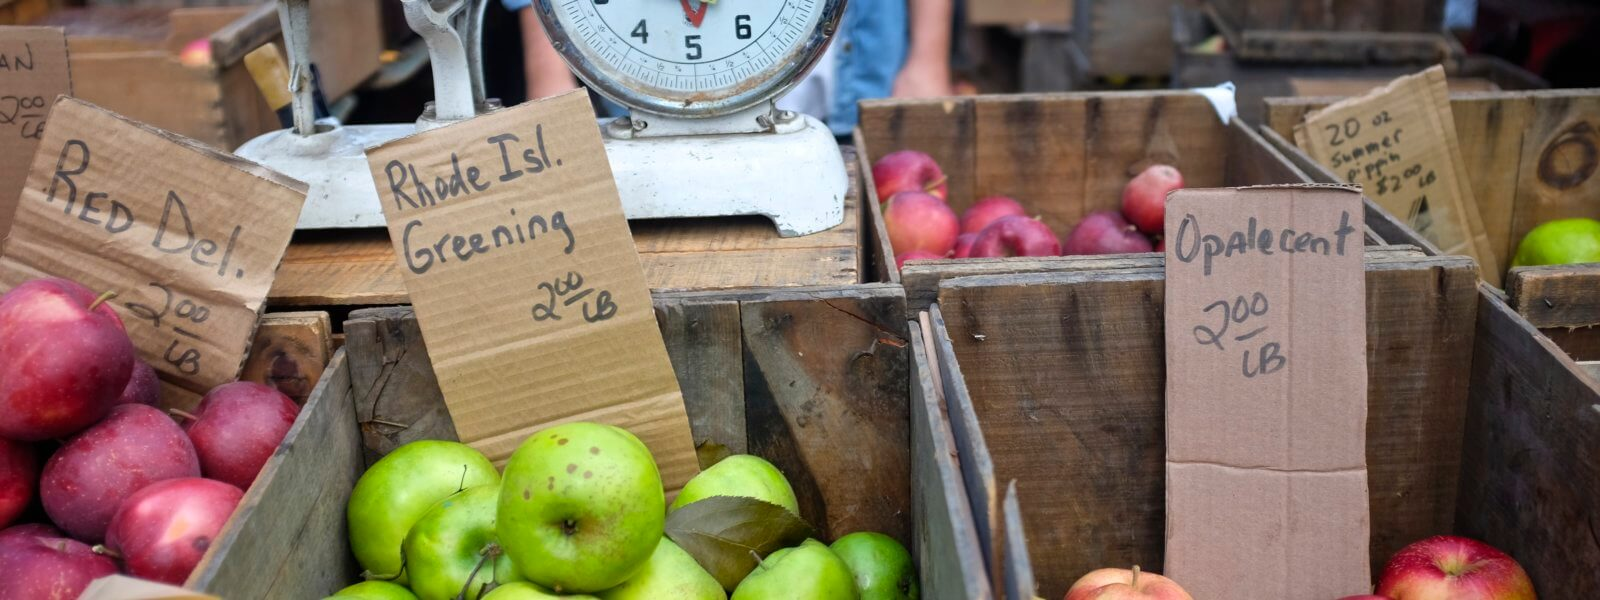 Apples and a produce scale at the farmer's market.